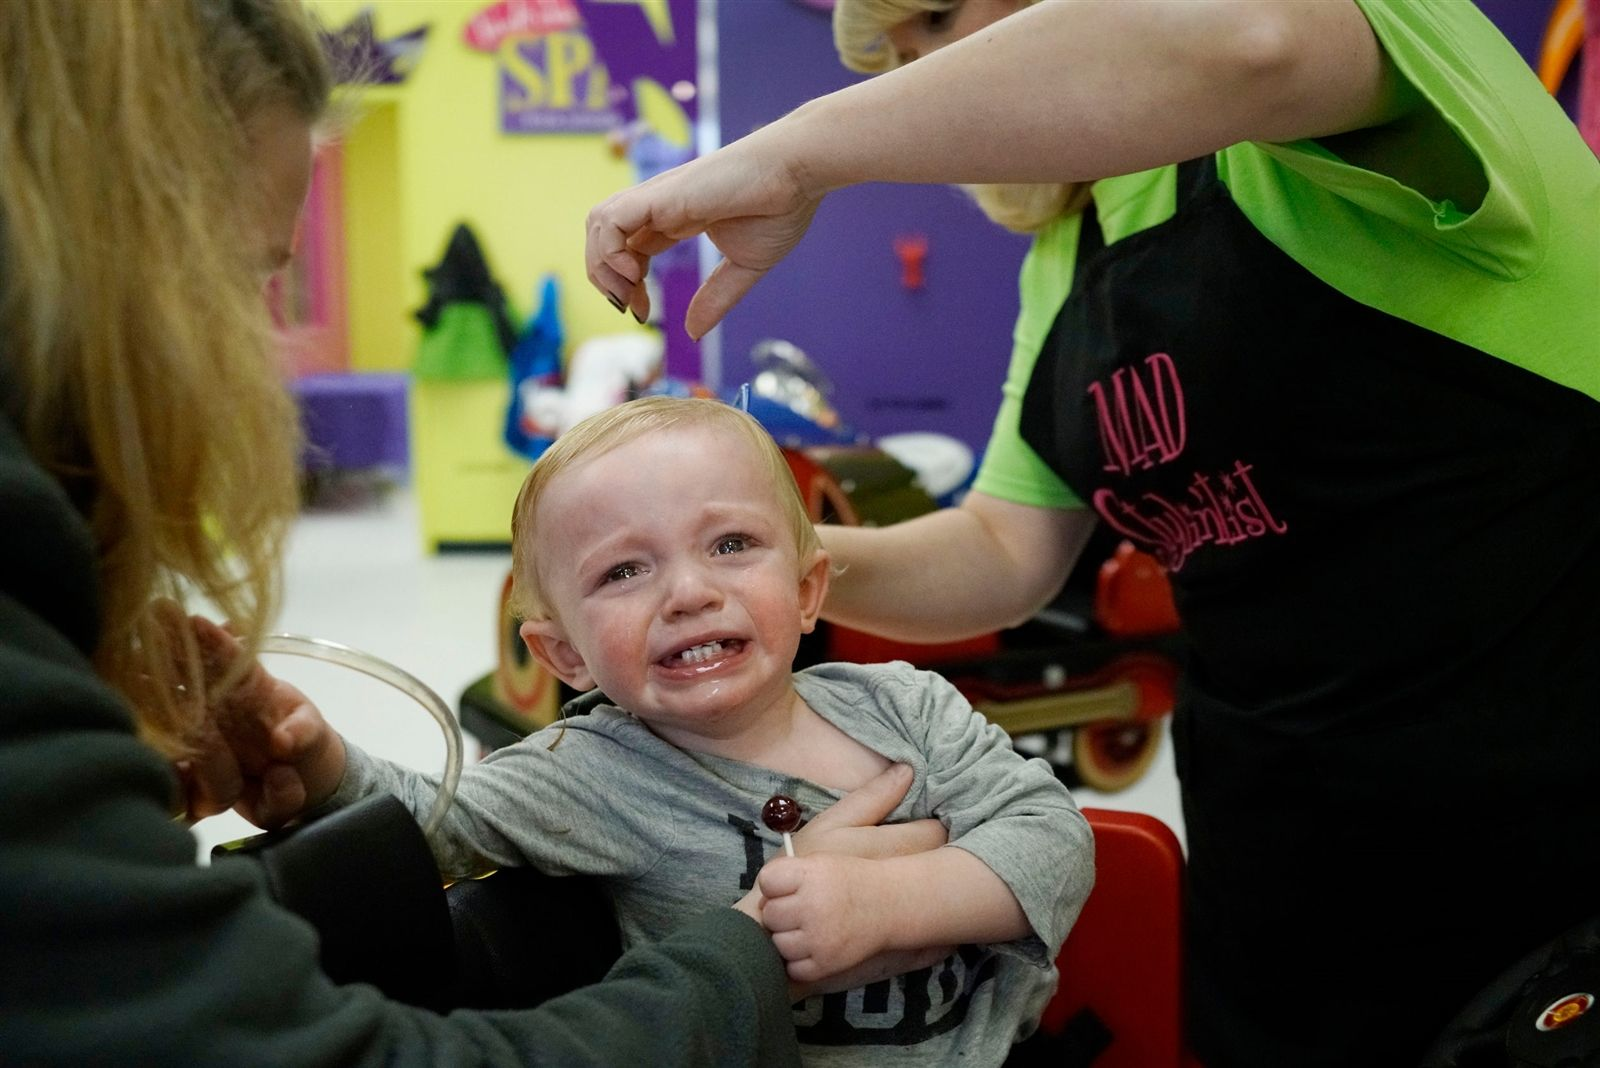 Ashley Deinzer tries to keep her 18-month-old son Chase calm and hold him still as Nikki Flynn gives him a cut at Shear Madness in Orchard Park, which specializes in children's haircuts, Saturday, Feb. 10, 2018.